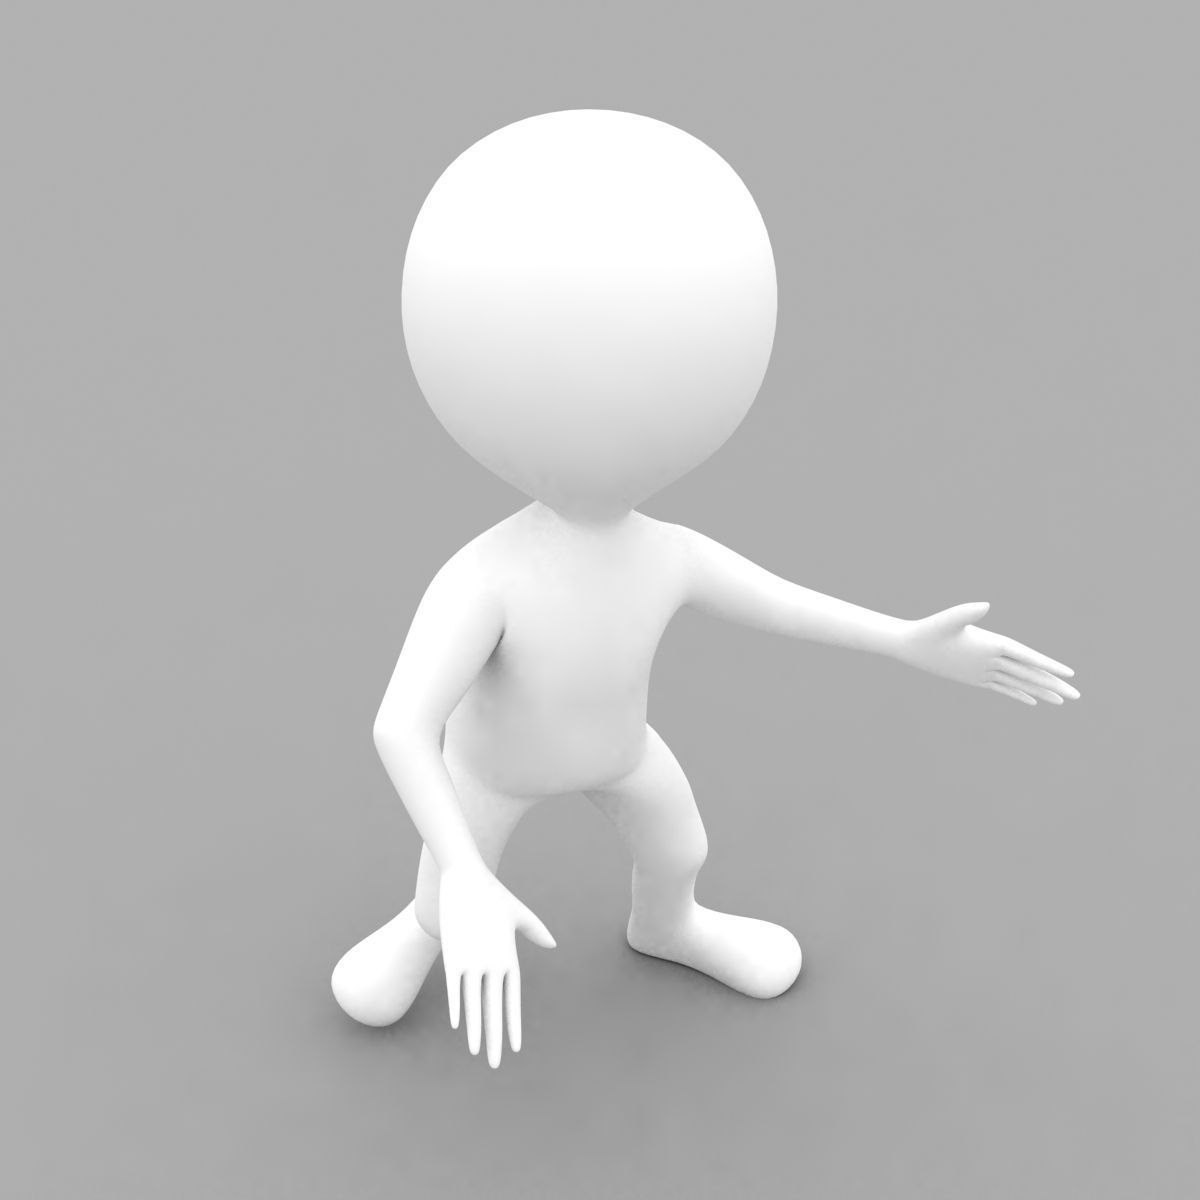 3D White Character Rigged with biped